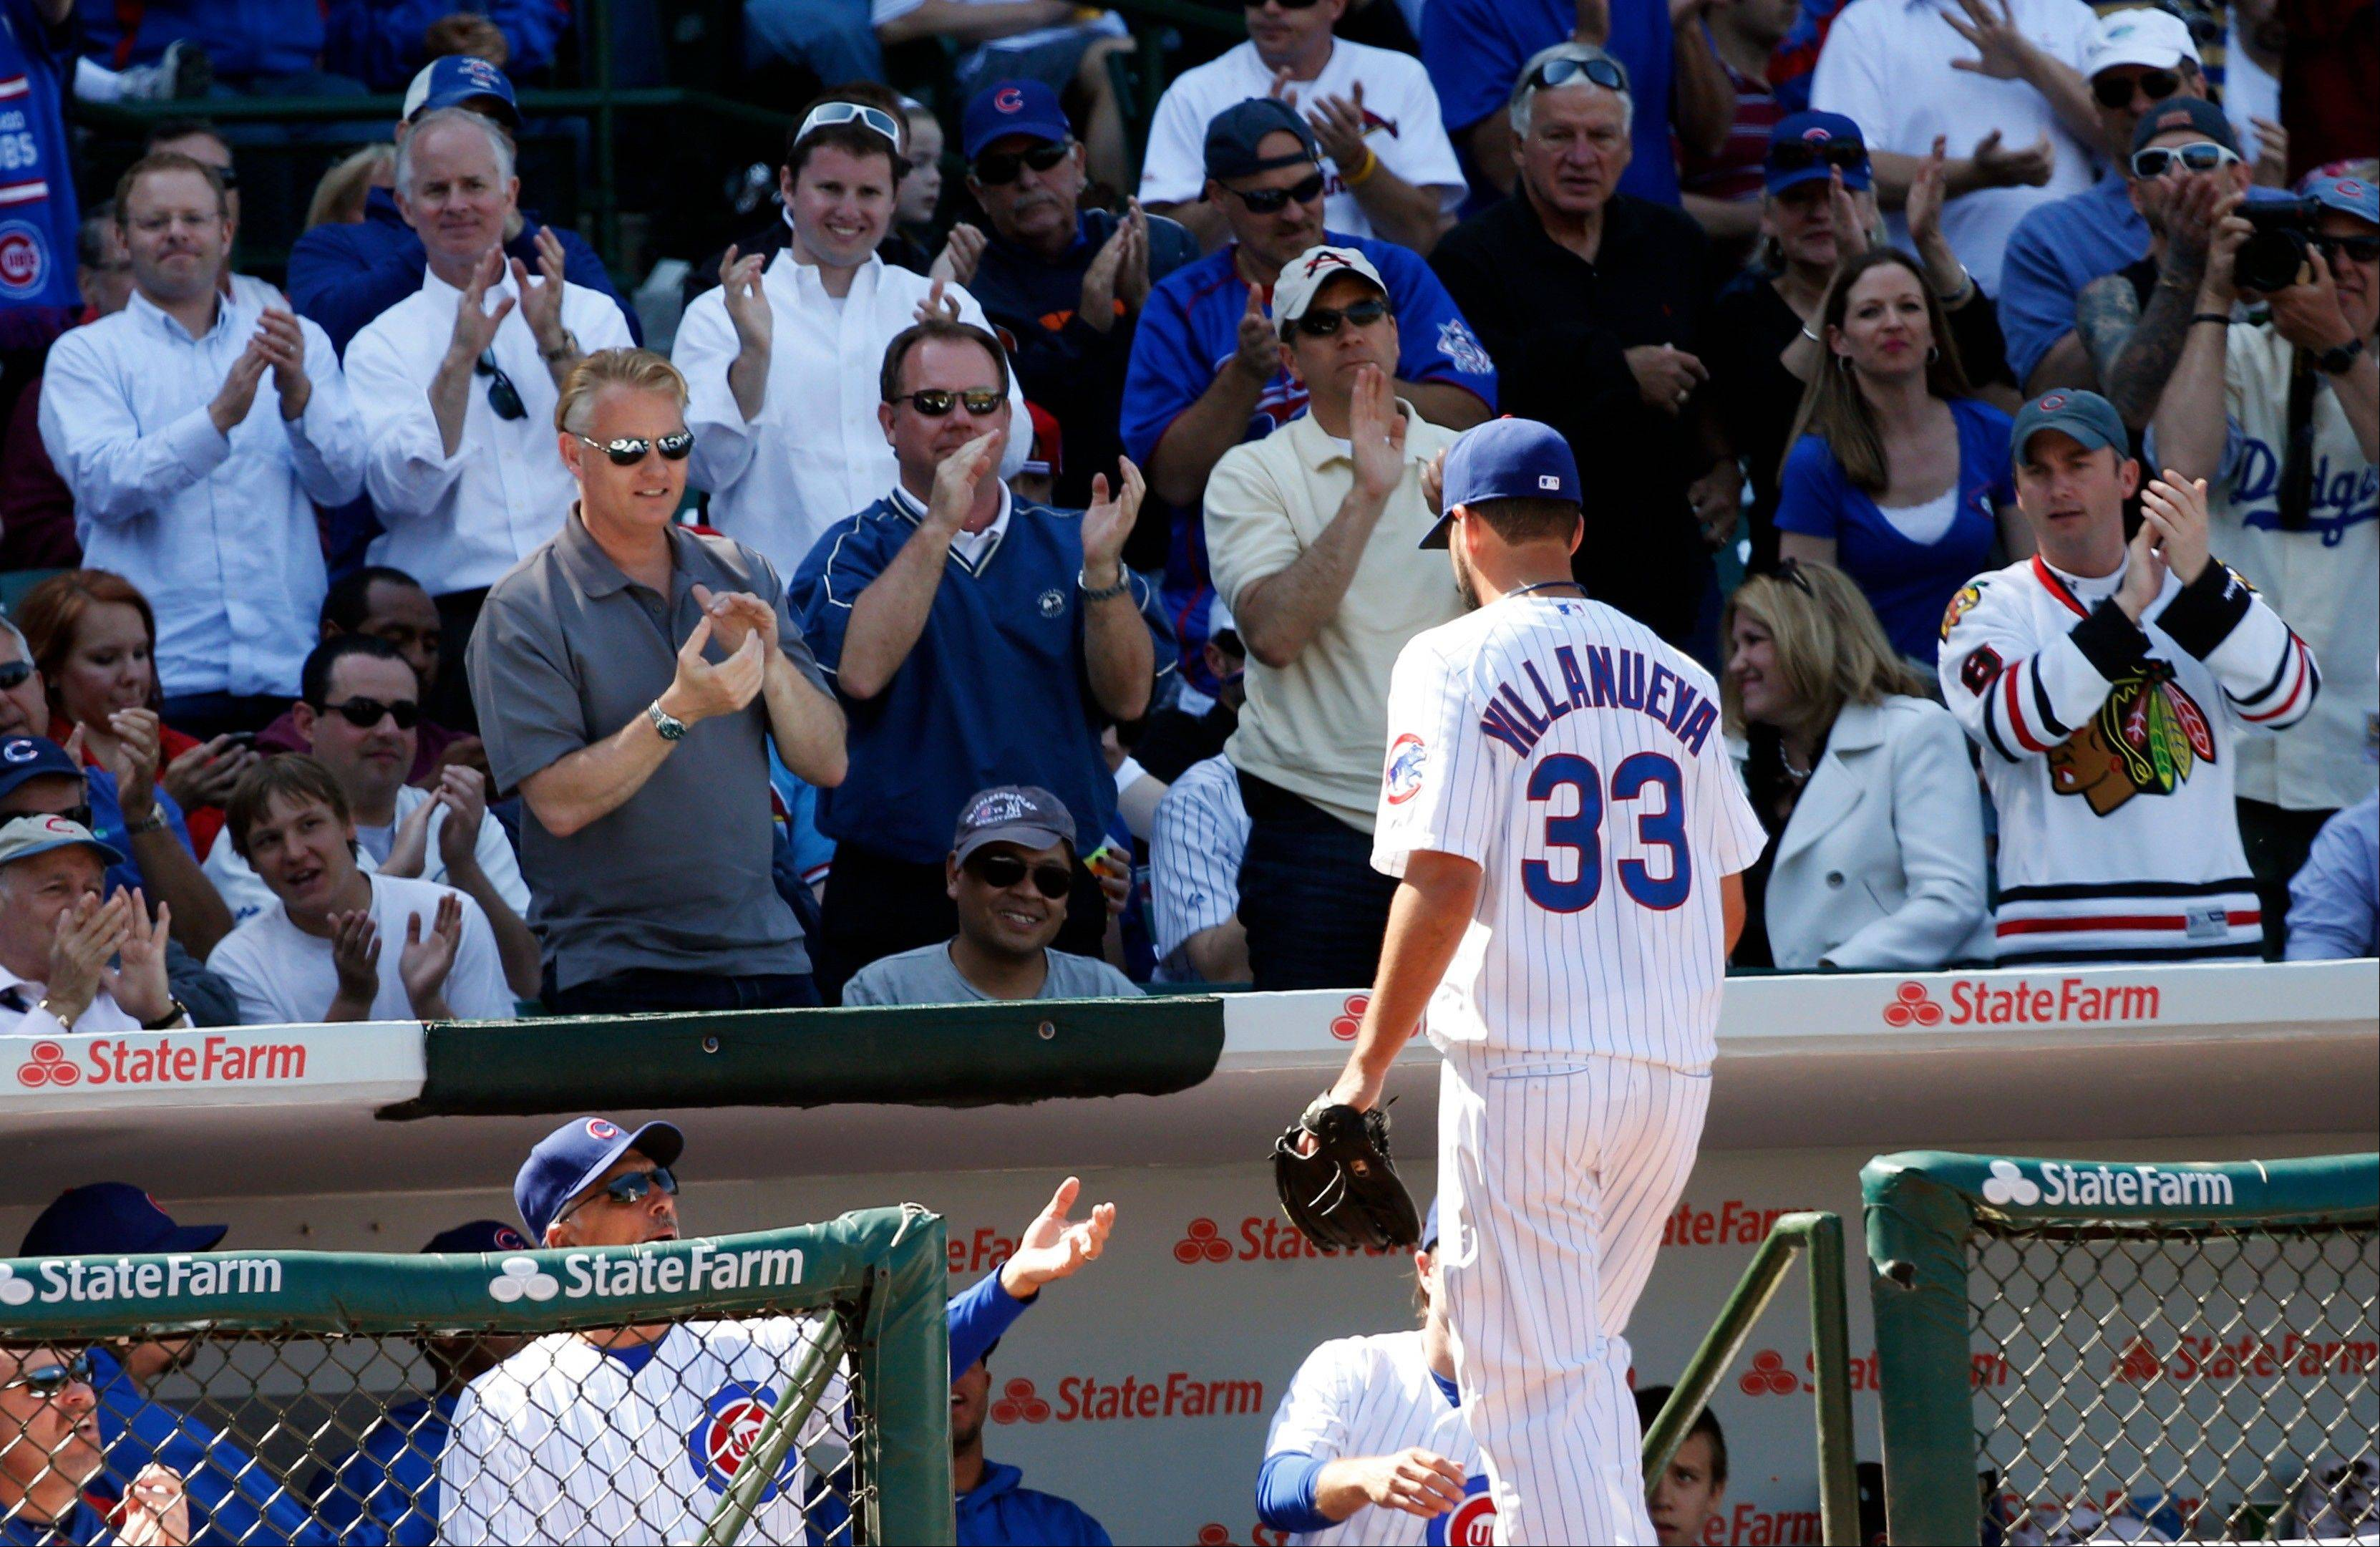 Cubs starting pitcher Carlos Villanueva leaves the field during the seventh inning of their 5-4 loss to the Cardinals on Wednesday at Wrigley Field.